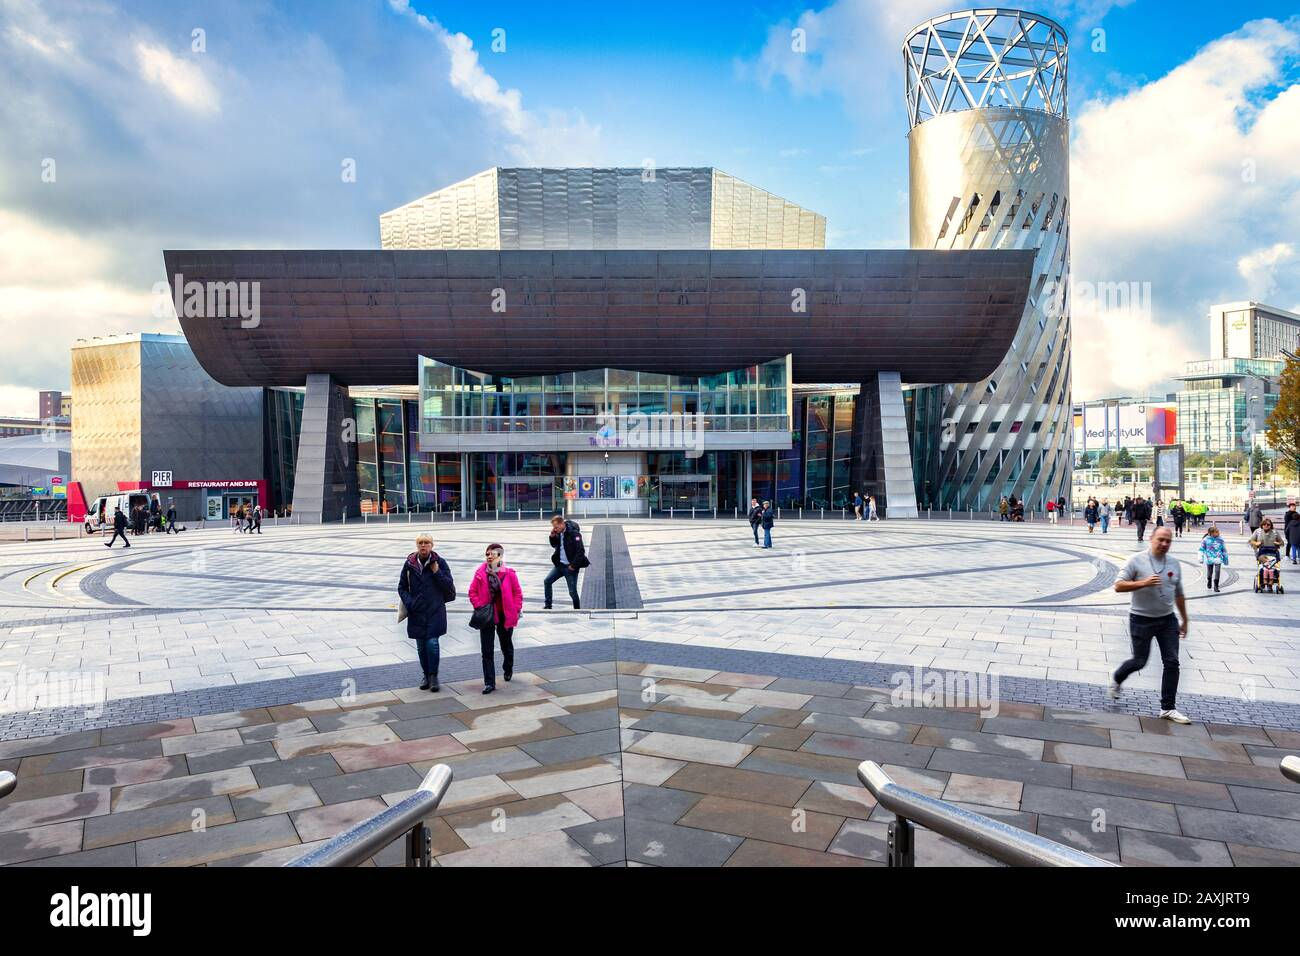 2 November 2018: Salford Quays, Manchester, UK -  The Lowry, the gallery and museum complex celebrating the life of L.S. Lowry. It was designed by Jam Stock Photo